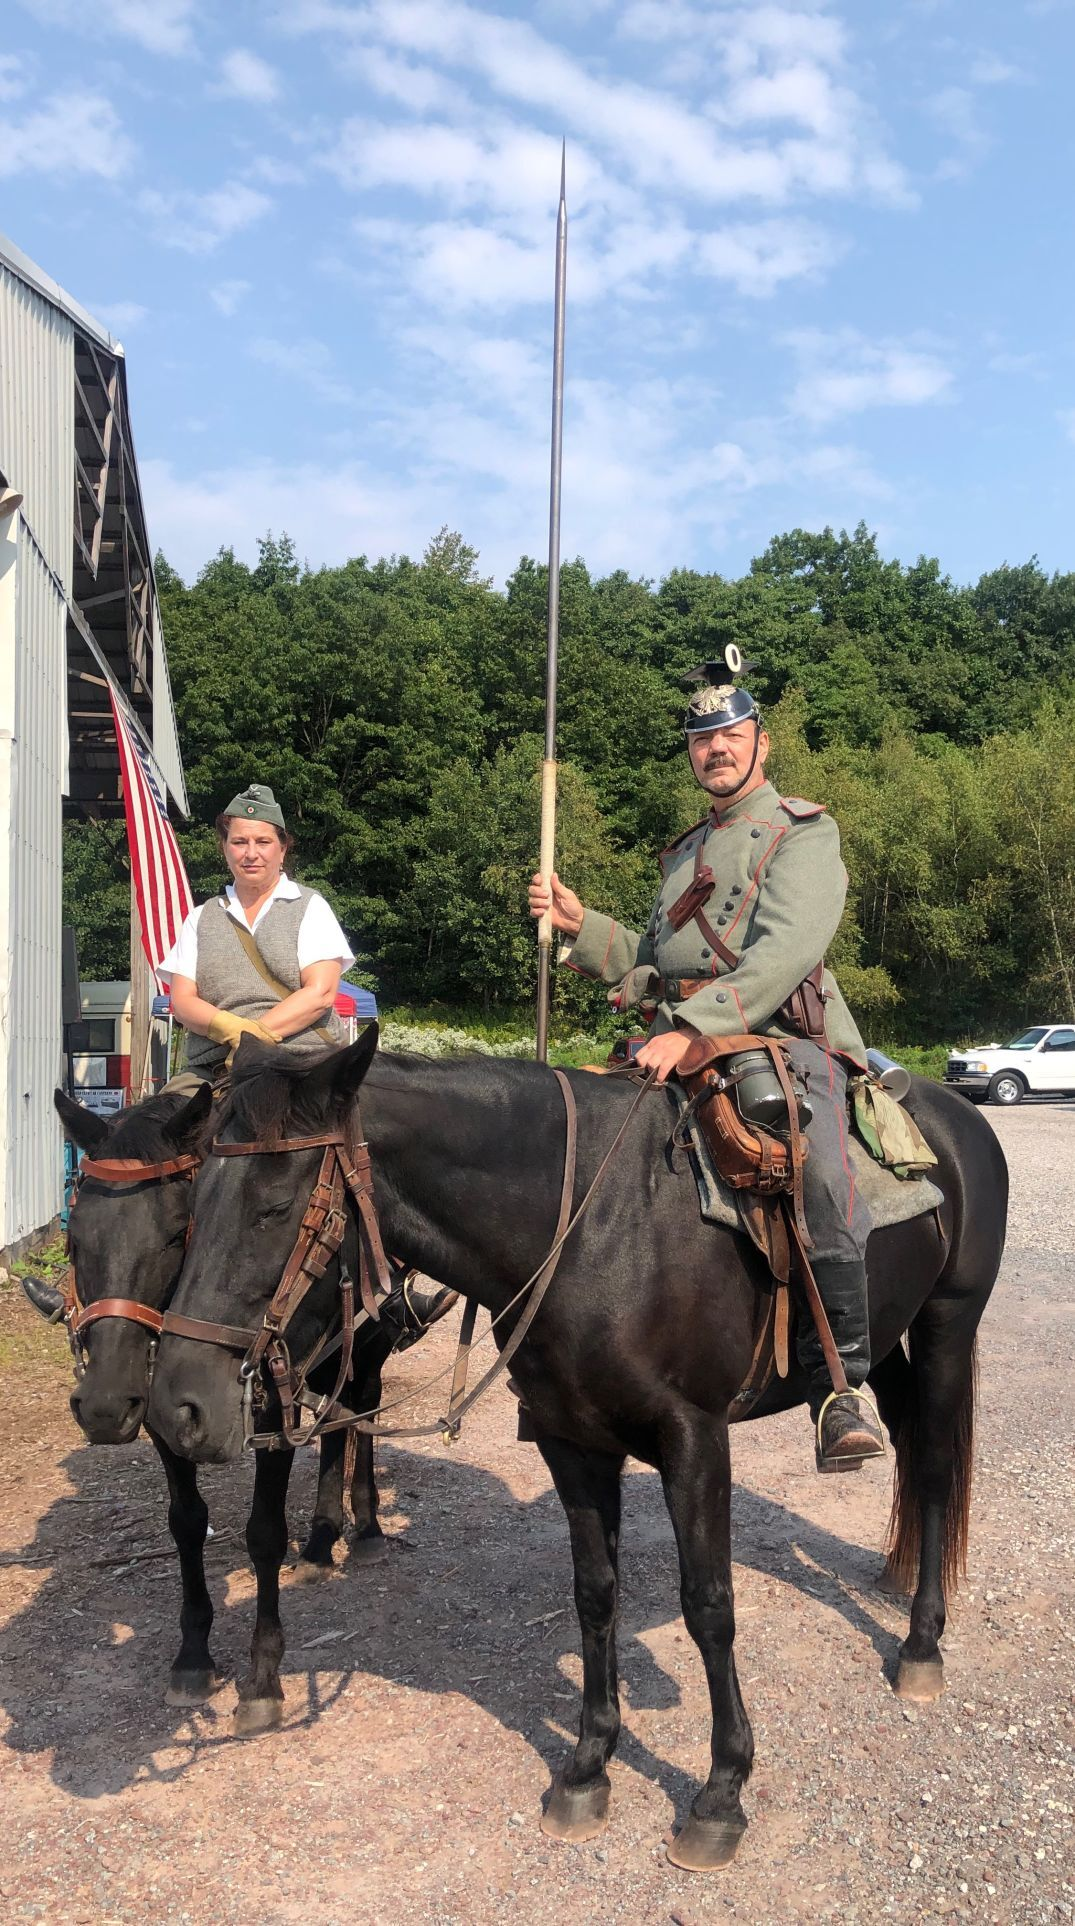 Riders show horses at WWII re-enactment